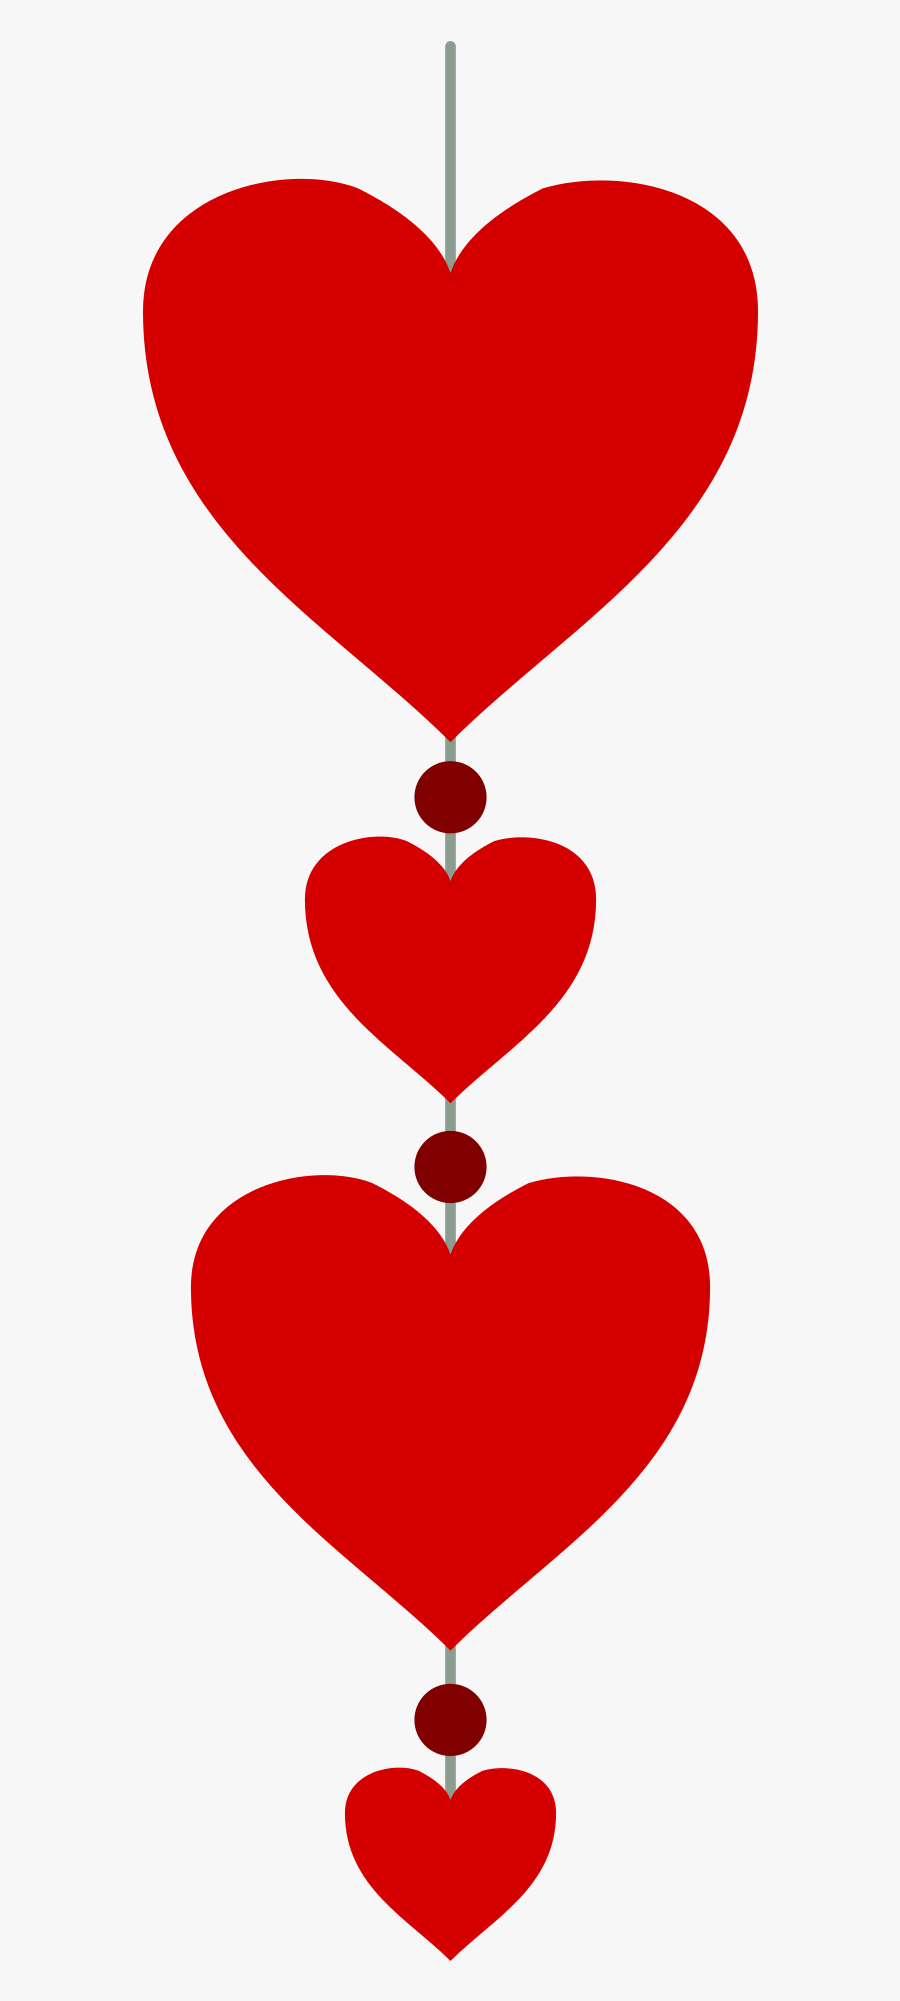 Hearts In A Vertical Line Png Image.